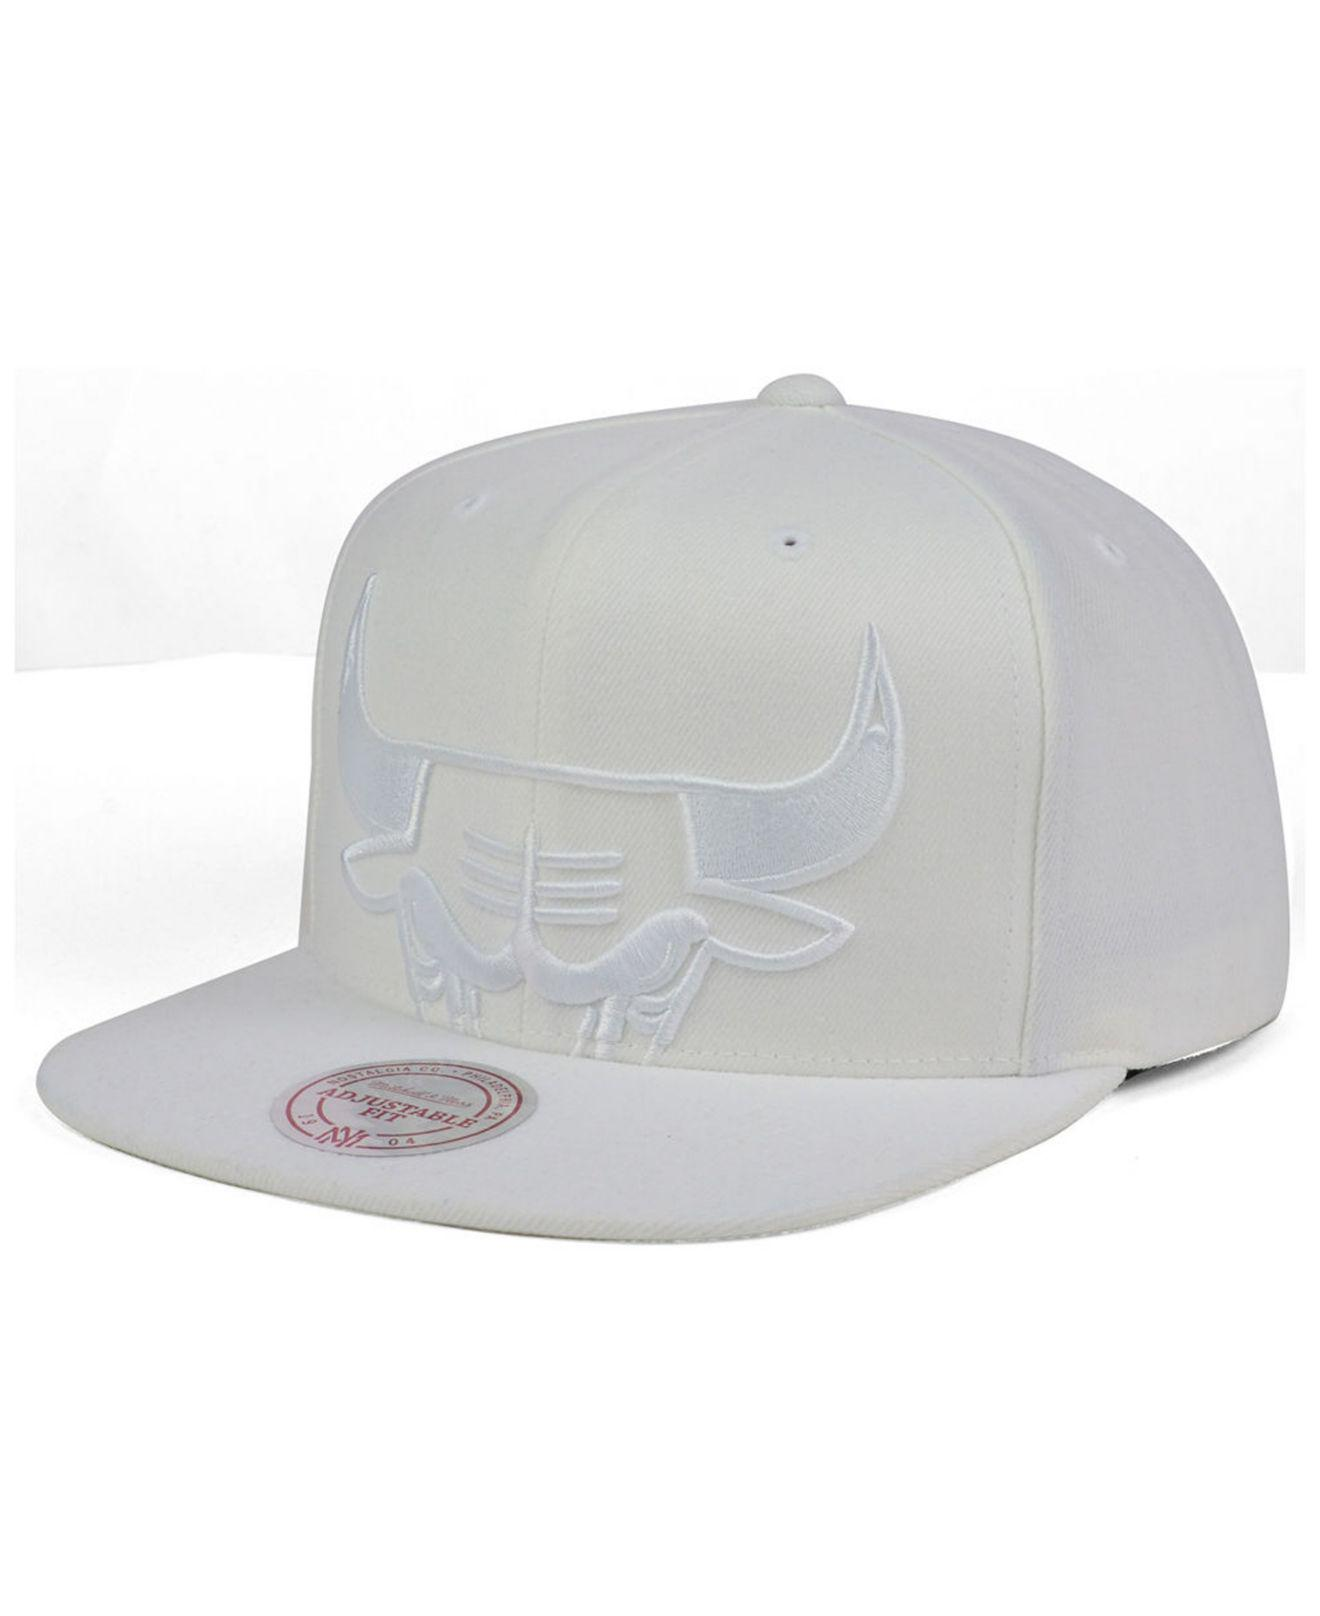 best service 88952 0d86d Mitchell   Ness - White Chicago Bulls Cropped Xl Logo Snapback Cap for Men  - Lyst. View fullscreen